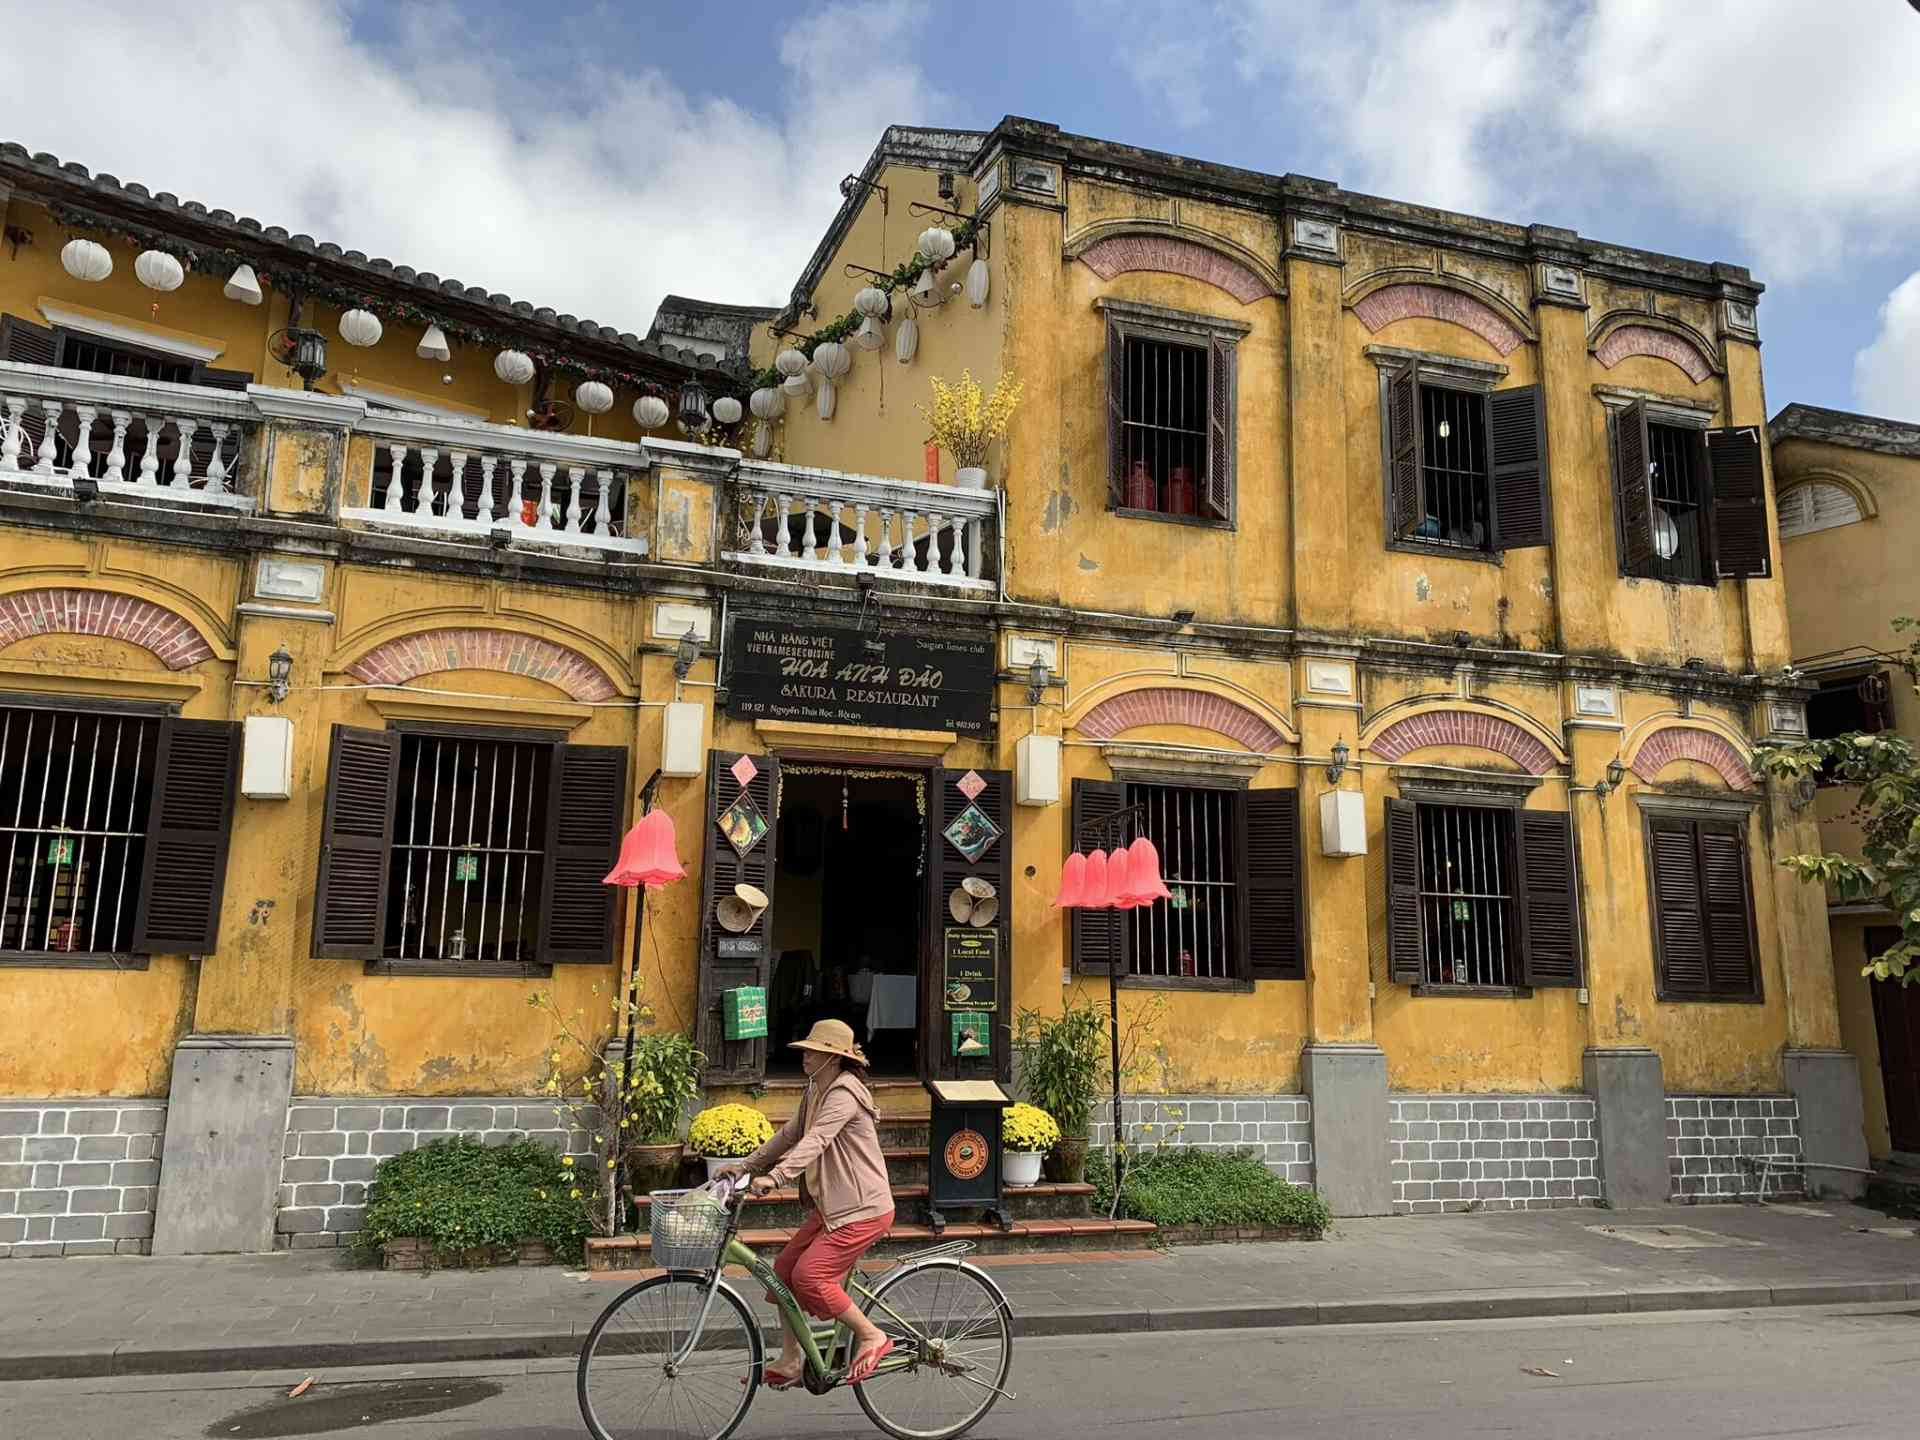 Congratulations to our April 2019 photo winner George C for this captivating shot of Hoi An, Vietnam.